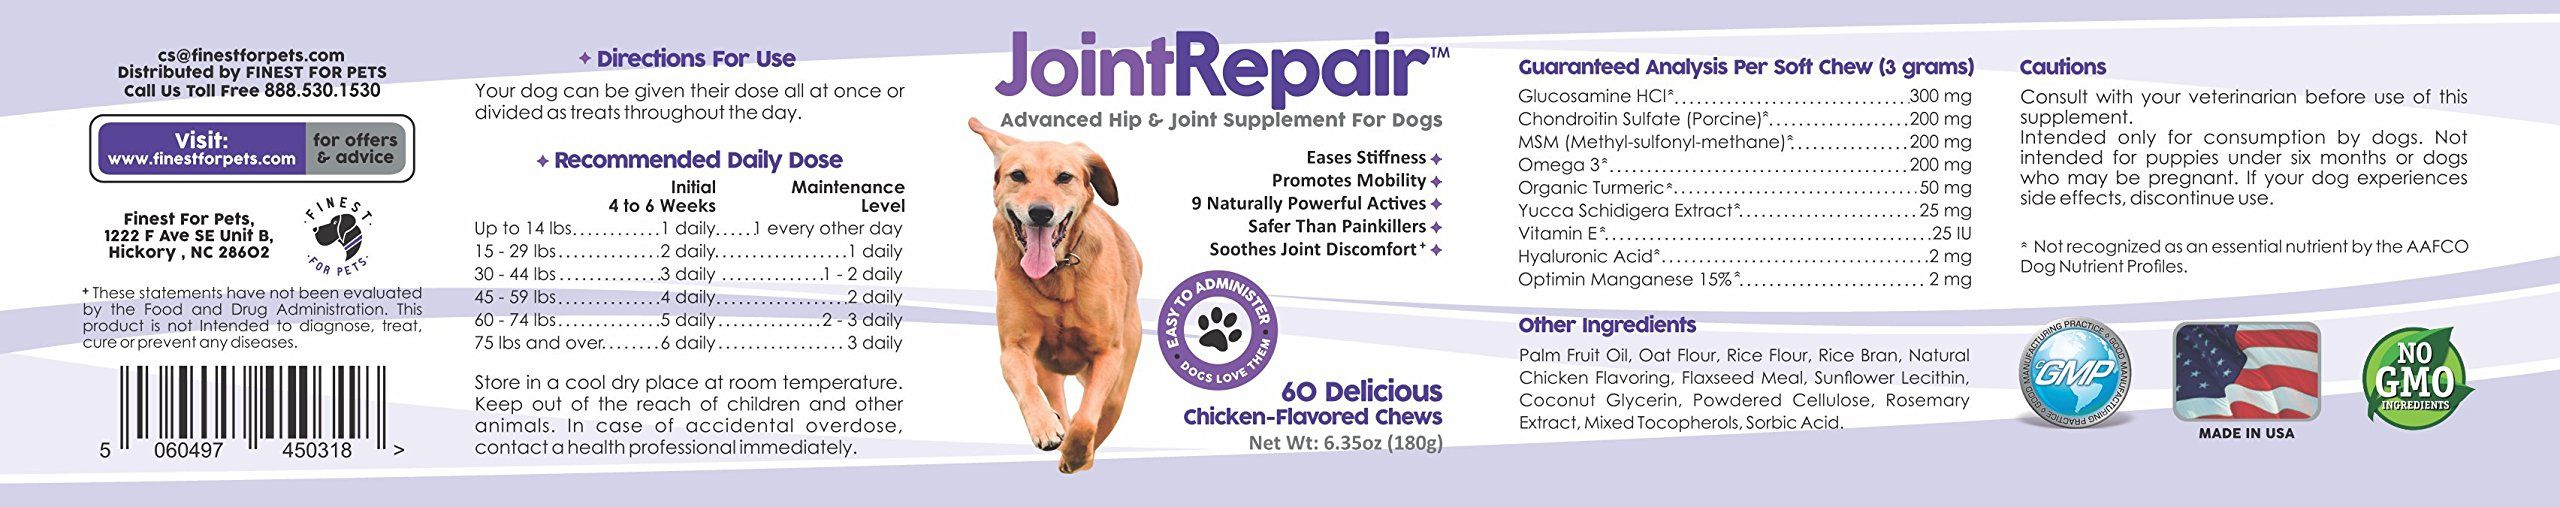 Pin On Joints And Bones Supplement